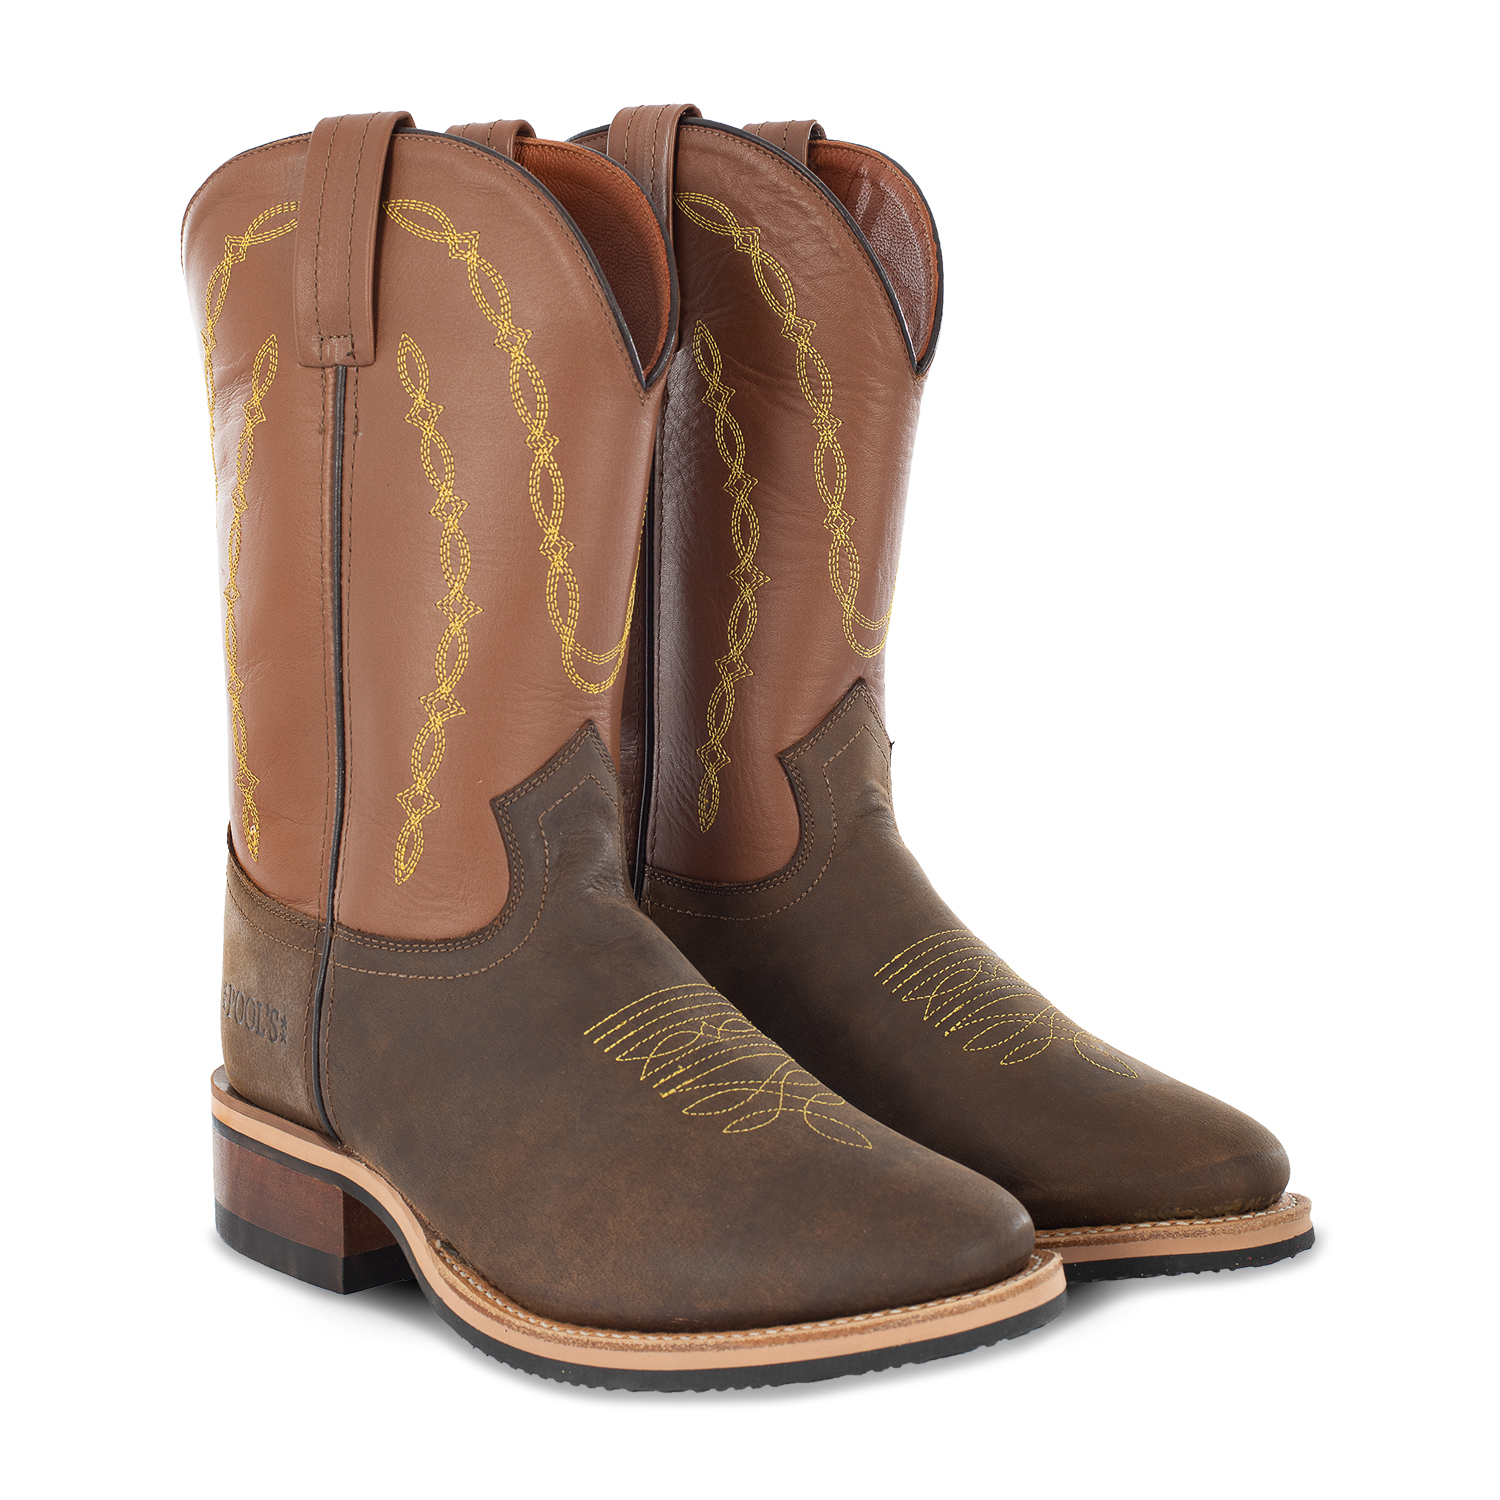 Western Boots from Pools